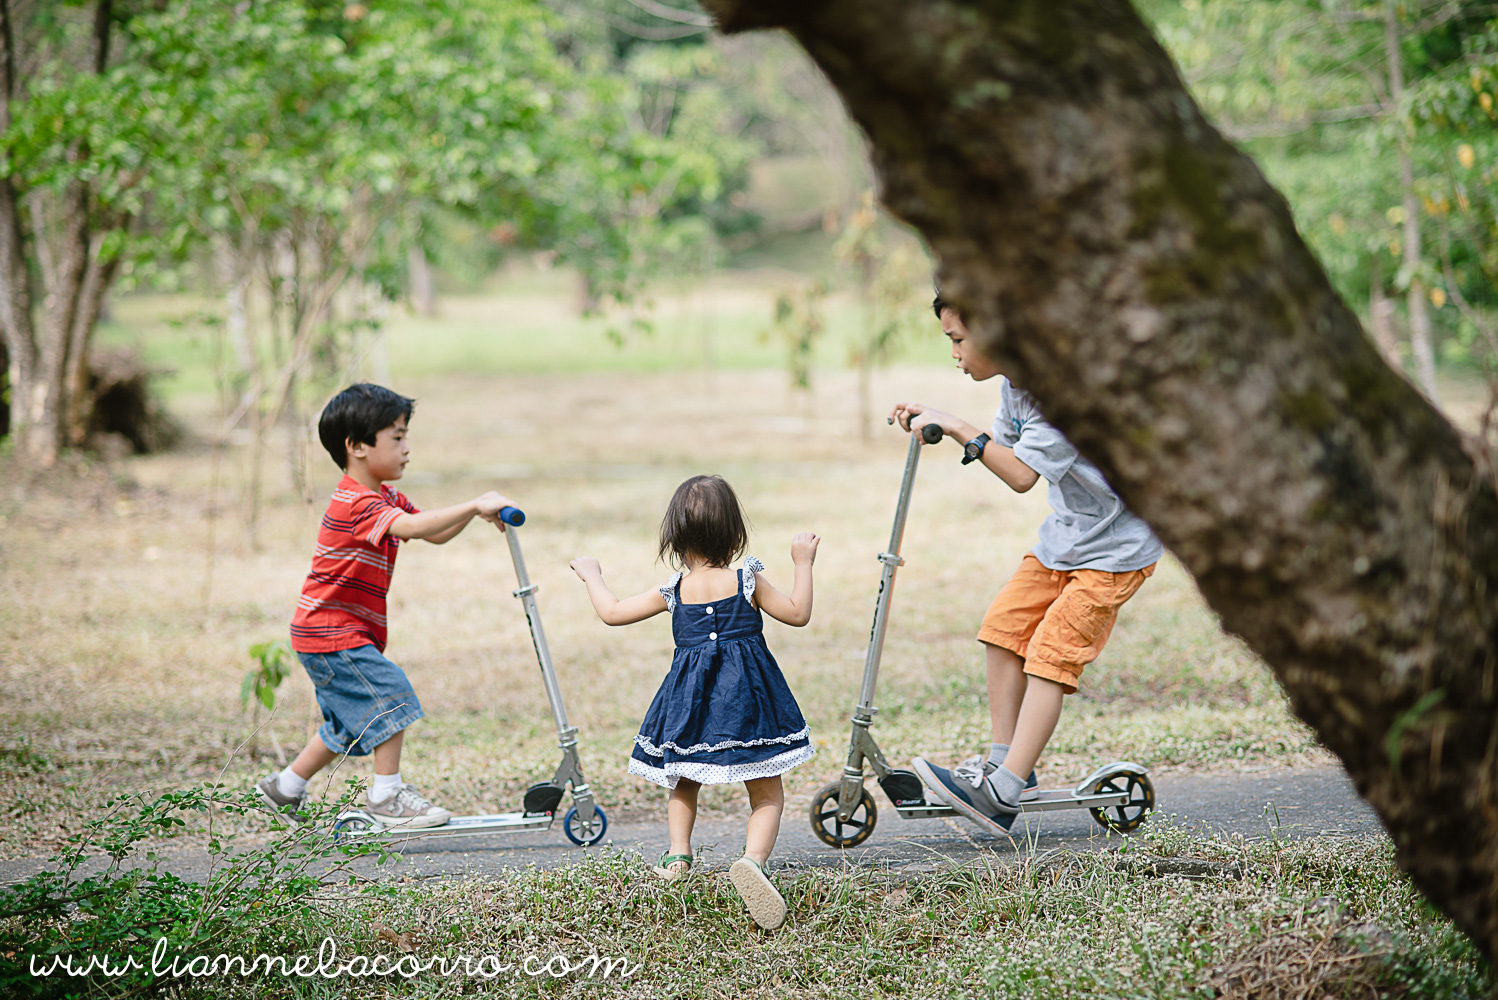 Photograpy by Lianne Bacorro - A Day in the Life Family Session - Roldan Family - edited-135